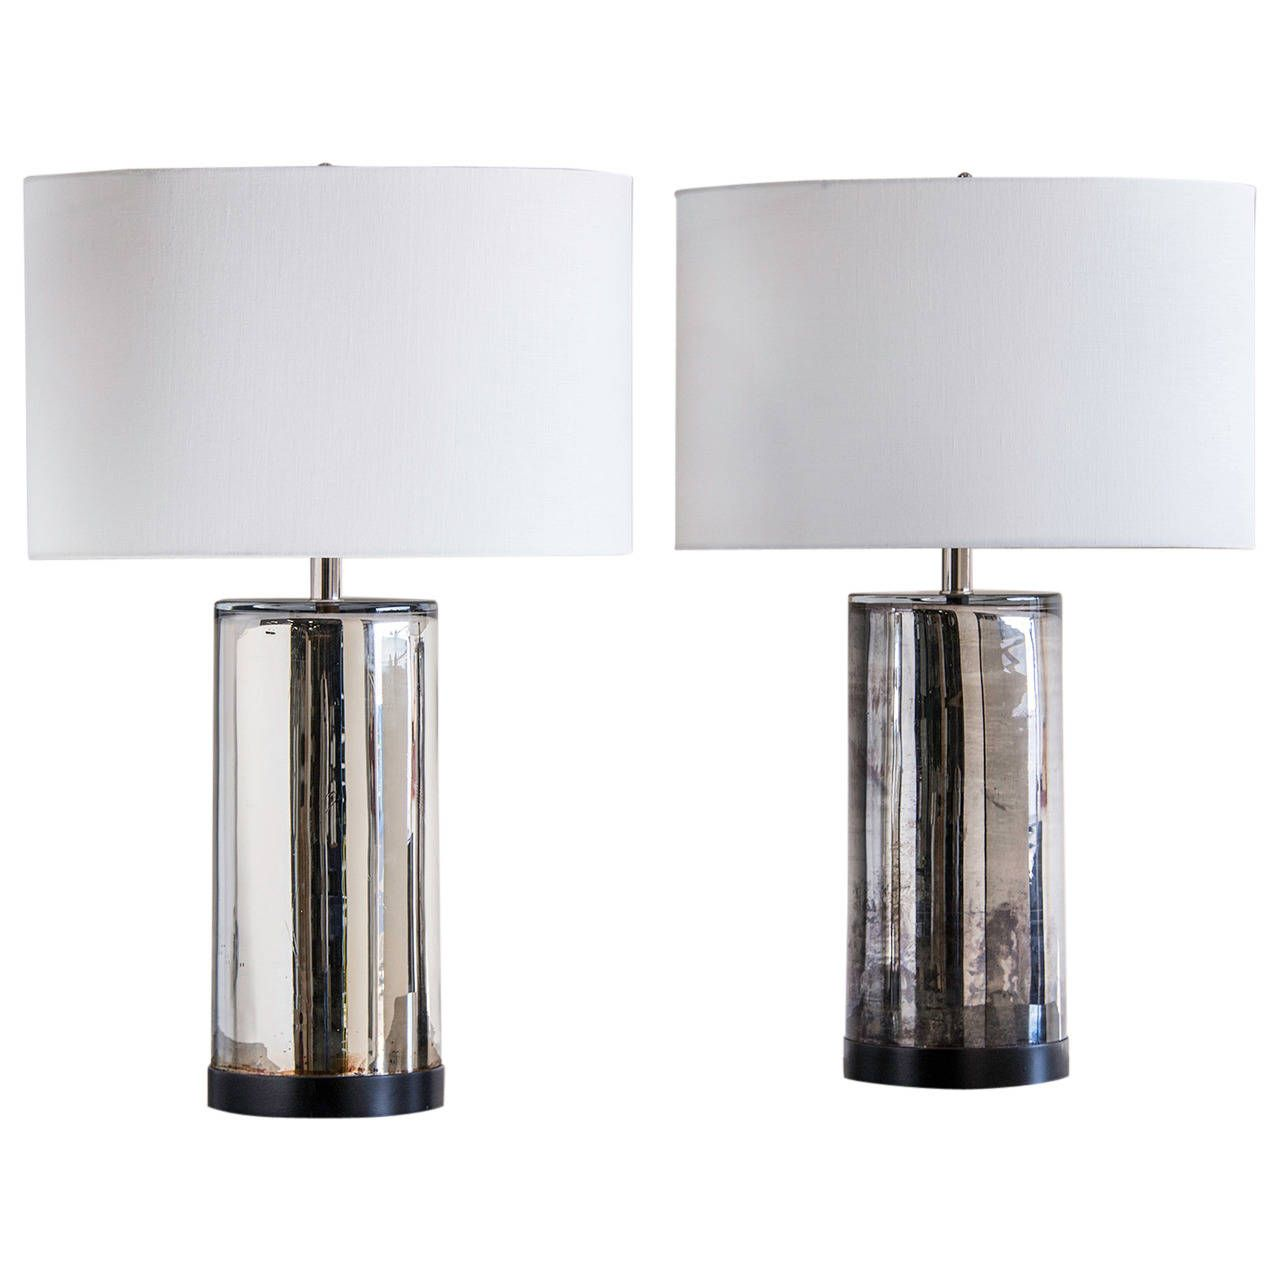 Vintage Pair of Mercury Glass Cylinder Lamps, France circa 1970 | From a unique collection of antique and modern table lamps at https://www.1stdibs.com/furniture/lighting/table-lamps/